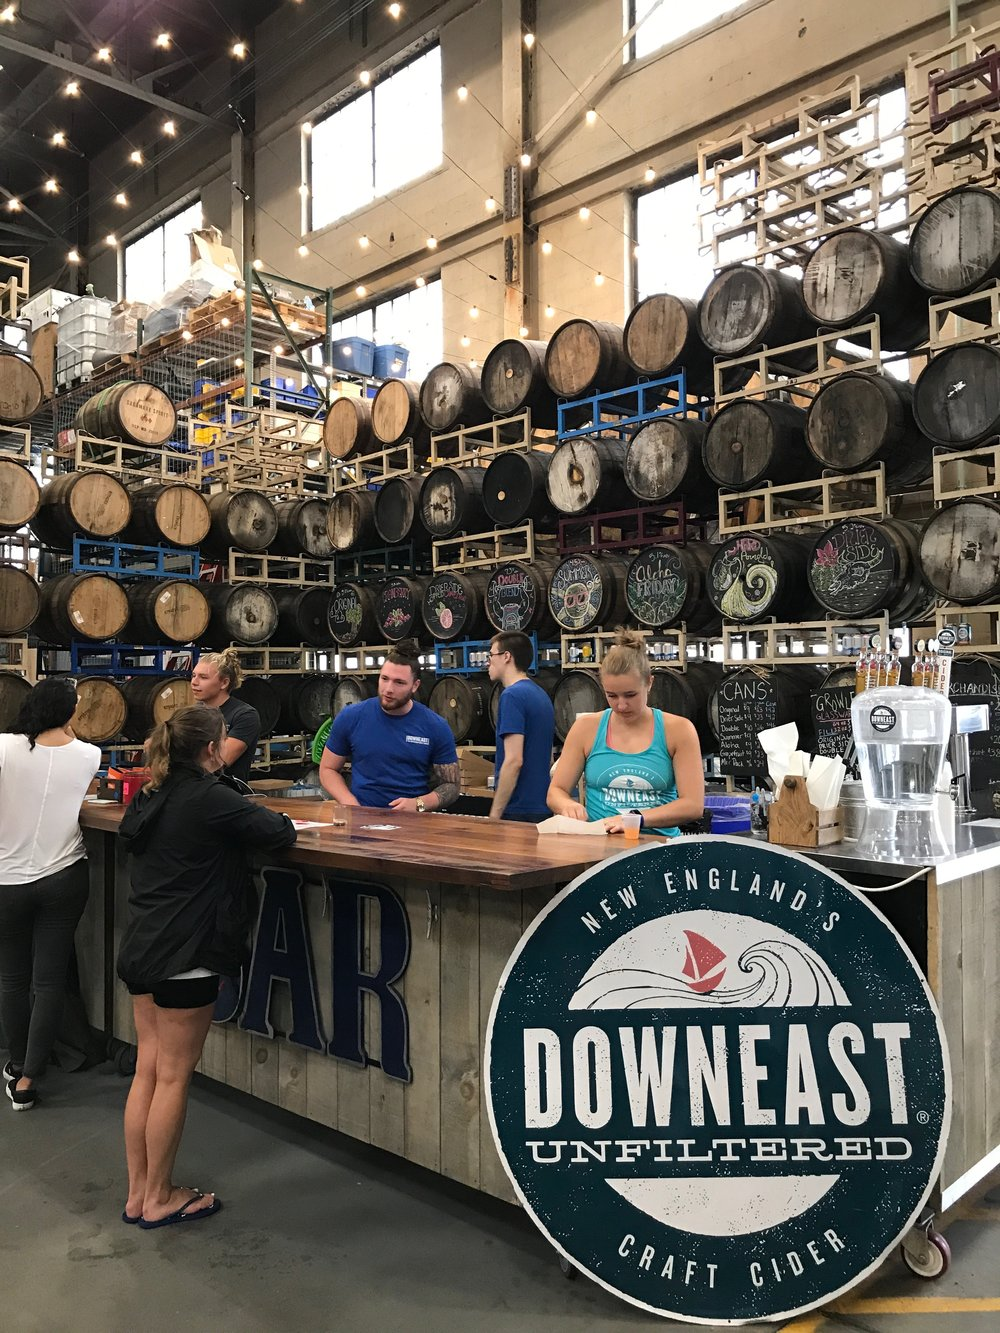 Downeast Cider Taproom